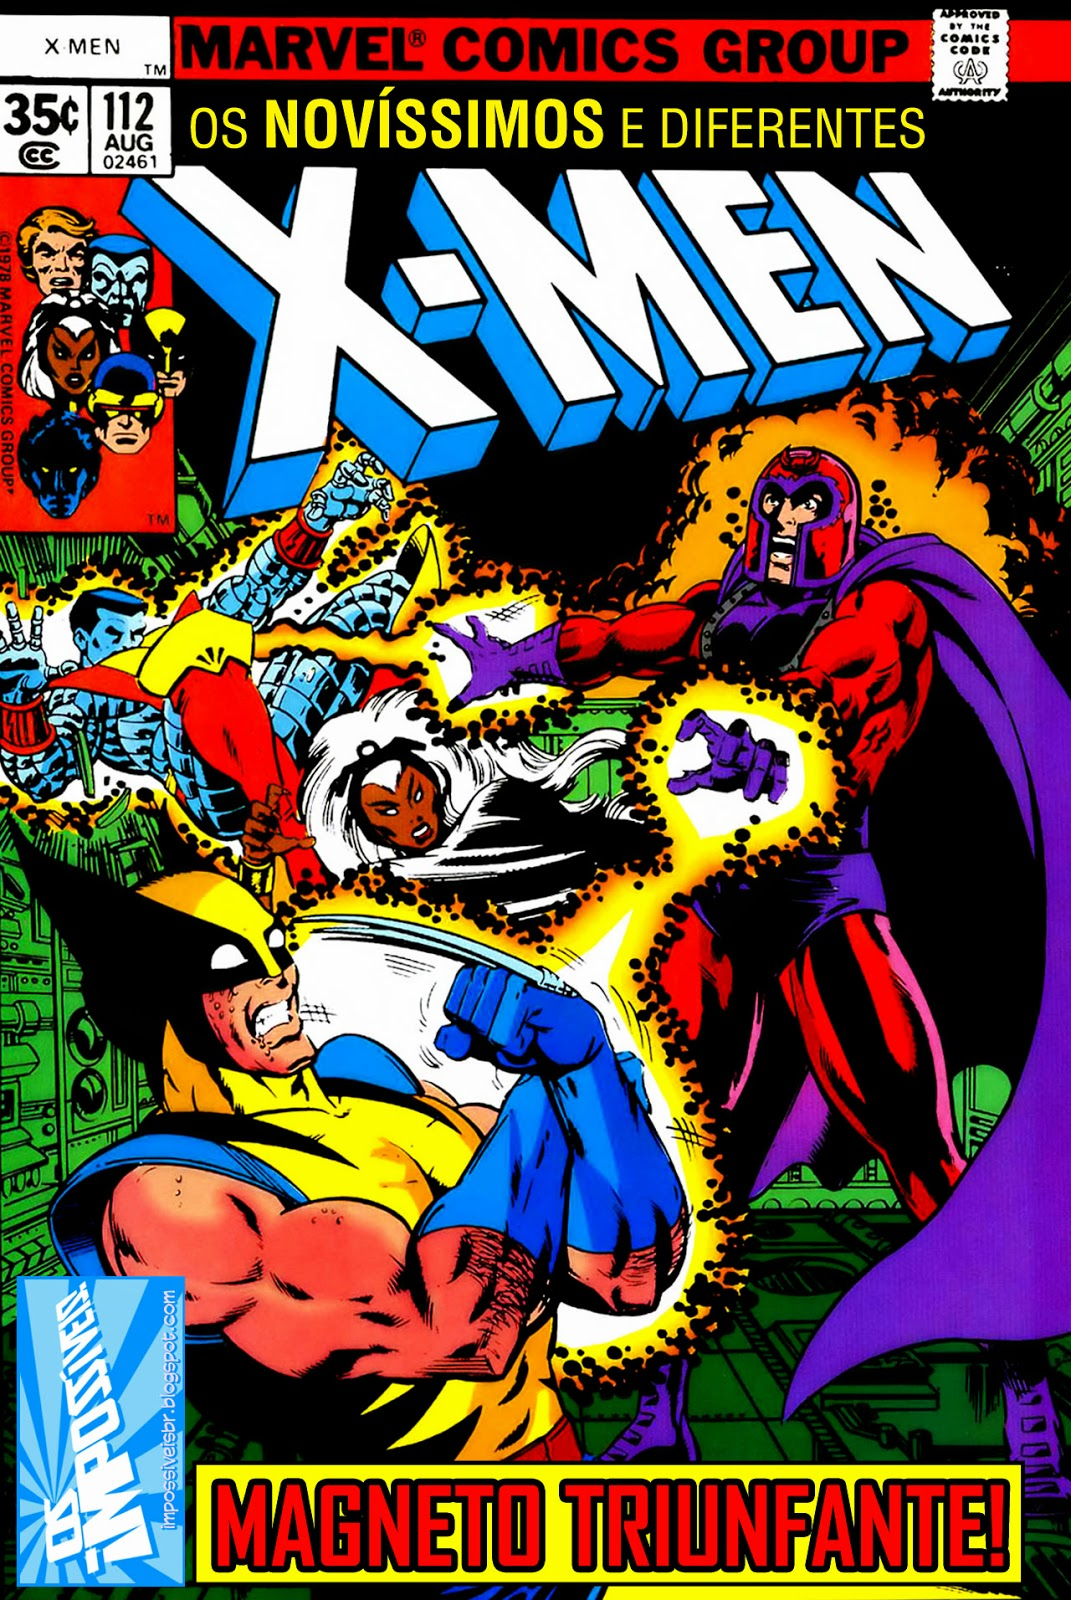 http://www.mediafire.com/download/6iarv2uy4y3q32a/Os.Fabulosos.X-Men.(X-Men.V1).112.HQBR.28OUT13.Os.Impossiveis.cbr